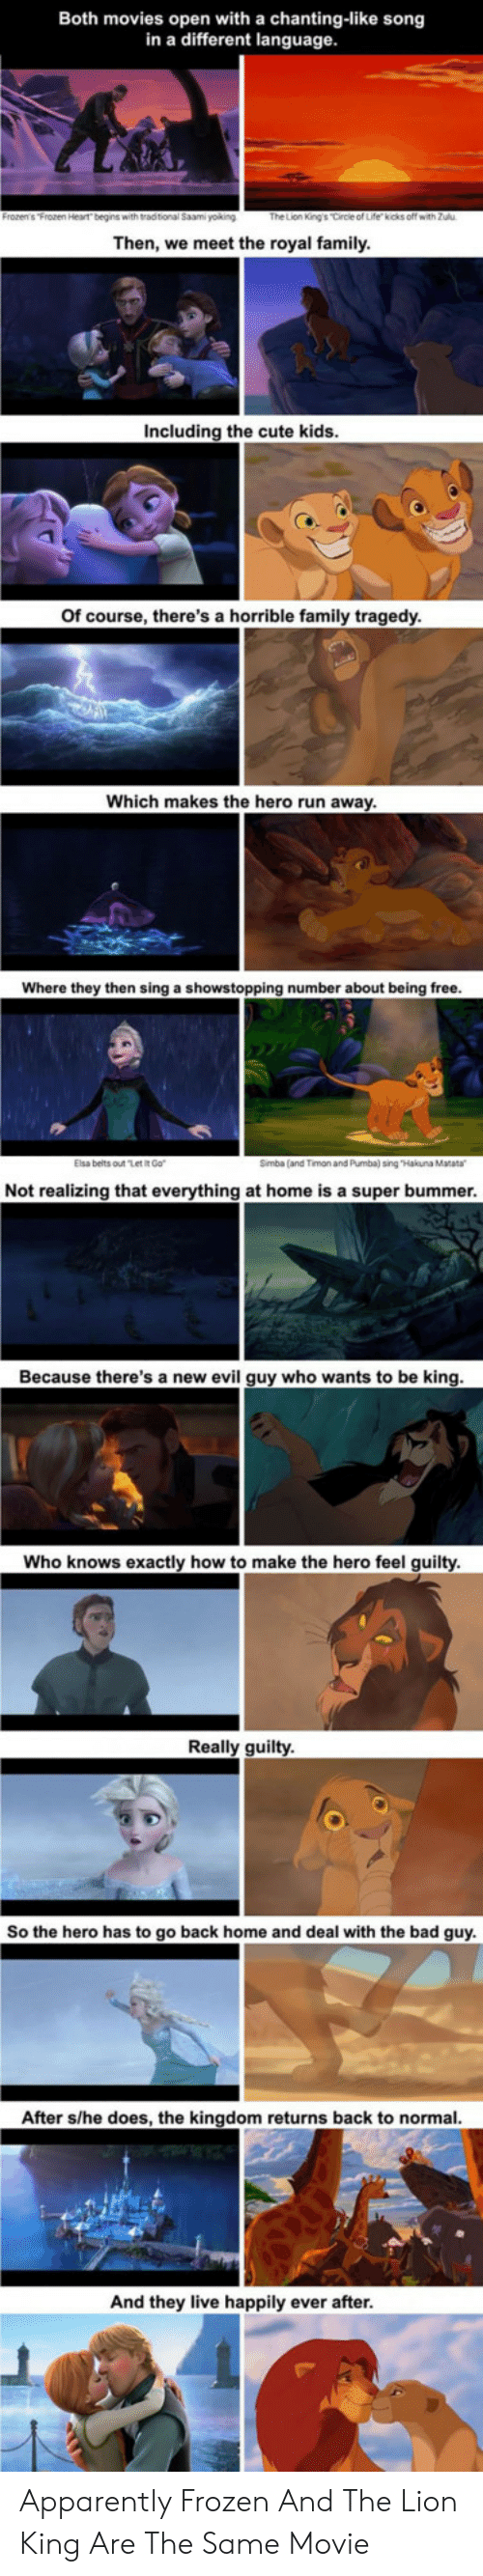 """Apparently, Bad, and Cute: Both movies open with a chanting-like song  in a different language.  The Lion King's Circle of Life kicks off with Zulu  Then, we meet the royal family.  Including the cute kids.  Of course, there's a horrible family tragedy.  Which makes the hero run away.  Where they then sing a showstopping number about being free.  Elsa belts out """"Let IR Go  Simba (and Timon and Pumba) sing """"Hakuna Matata  Not realizing that everything at home is a super bummer.  Because there's a new evil guy who wants to be king.  Who knows exactly how to make the hero feel guilty.  Really guilty  So the hero has to go back home and deal with the bad guy.  After s/he does, the kingdom returns back to normal.  And they live happily ever after. Apparently Frozen And The Lion King Are The Same Movie"""